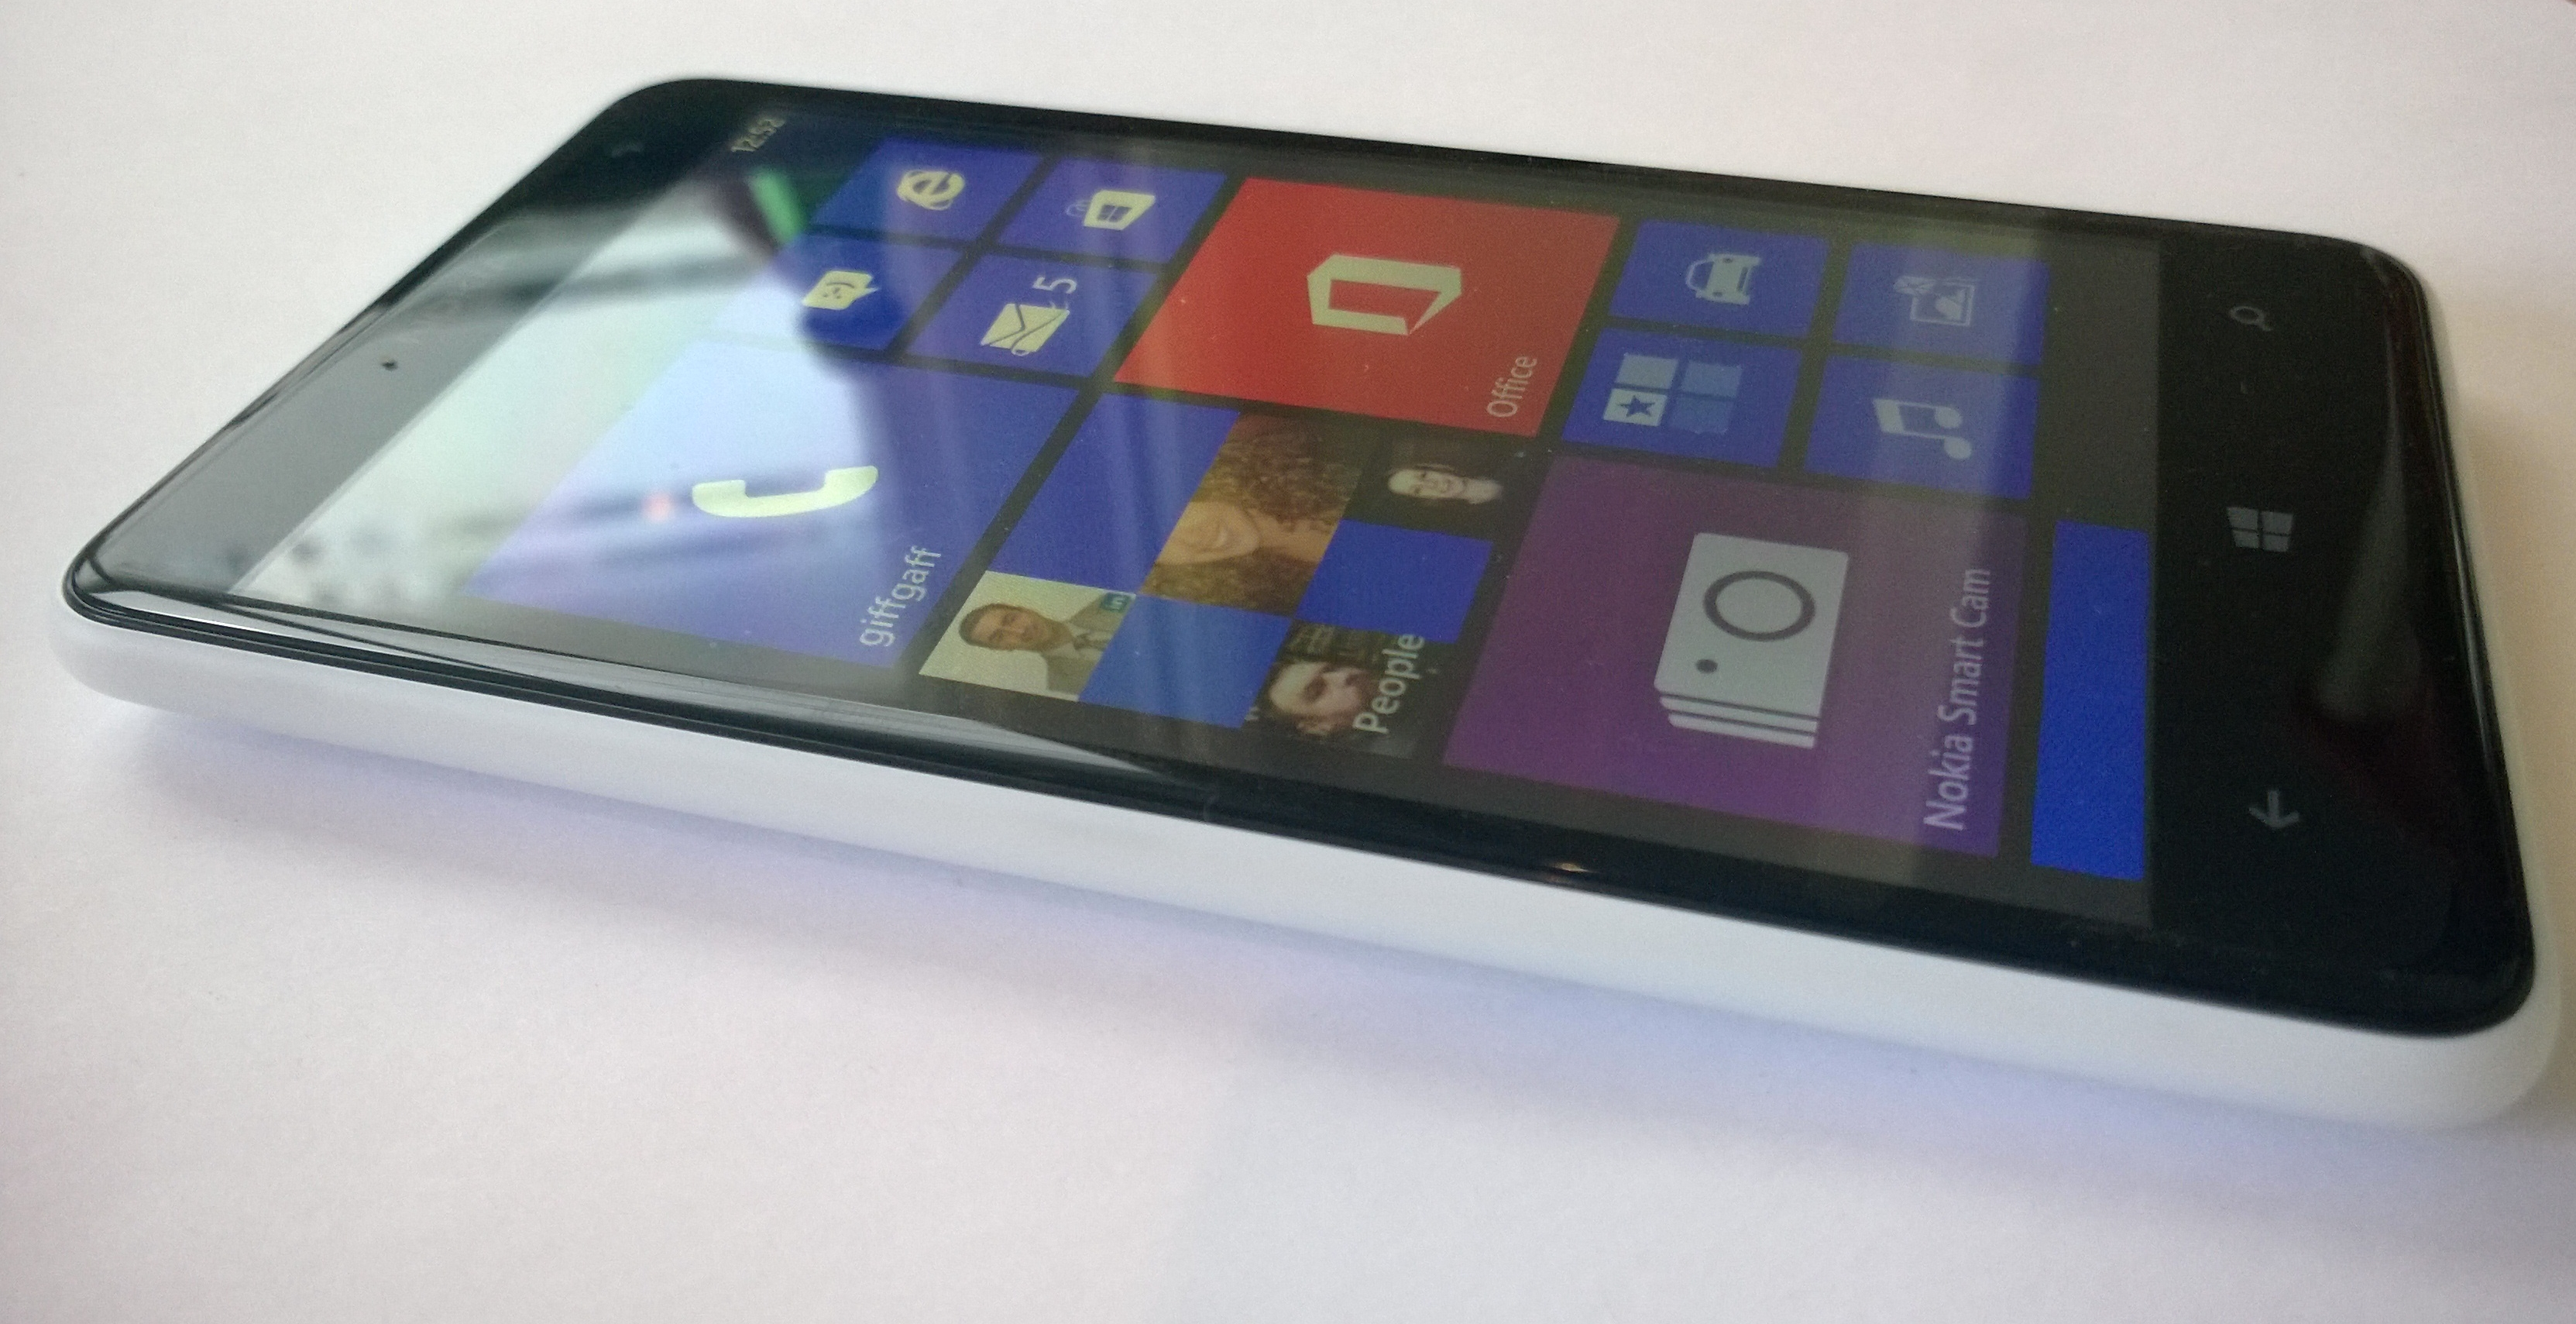 Lumia625 tiles Nokia Lumia 625 review: 4G saves the day, but the 4.7 display disappoints